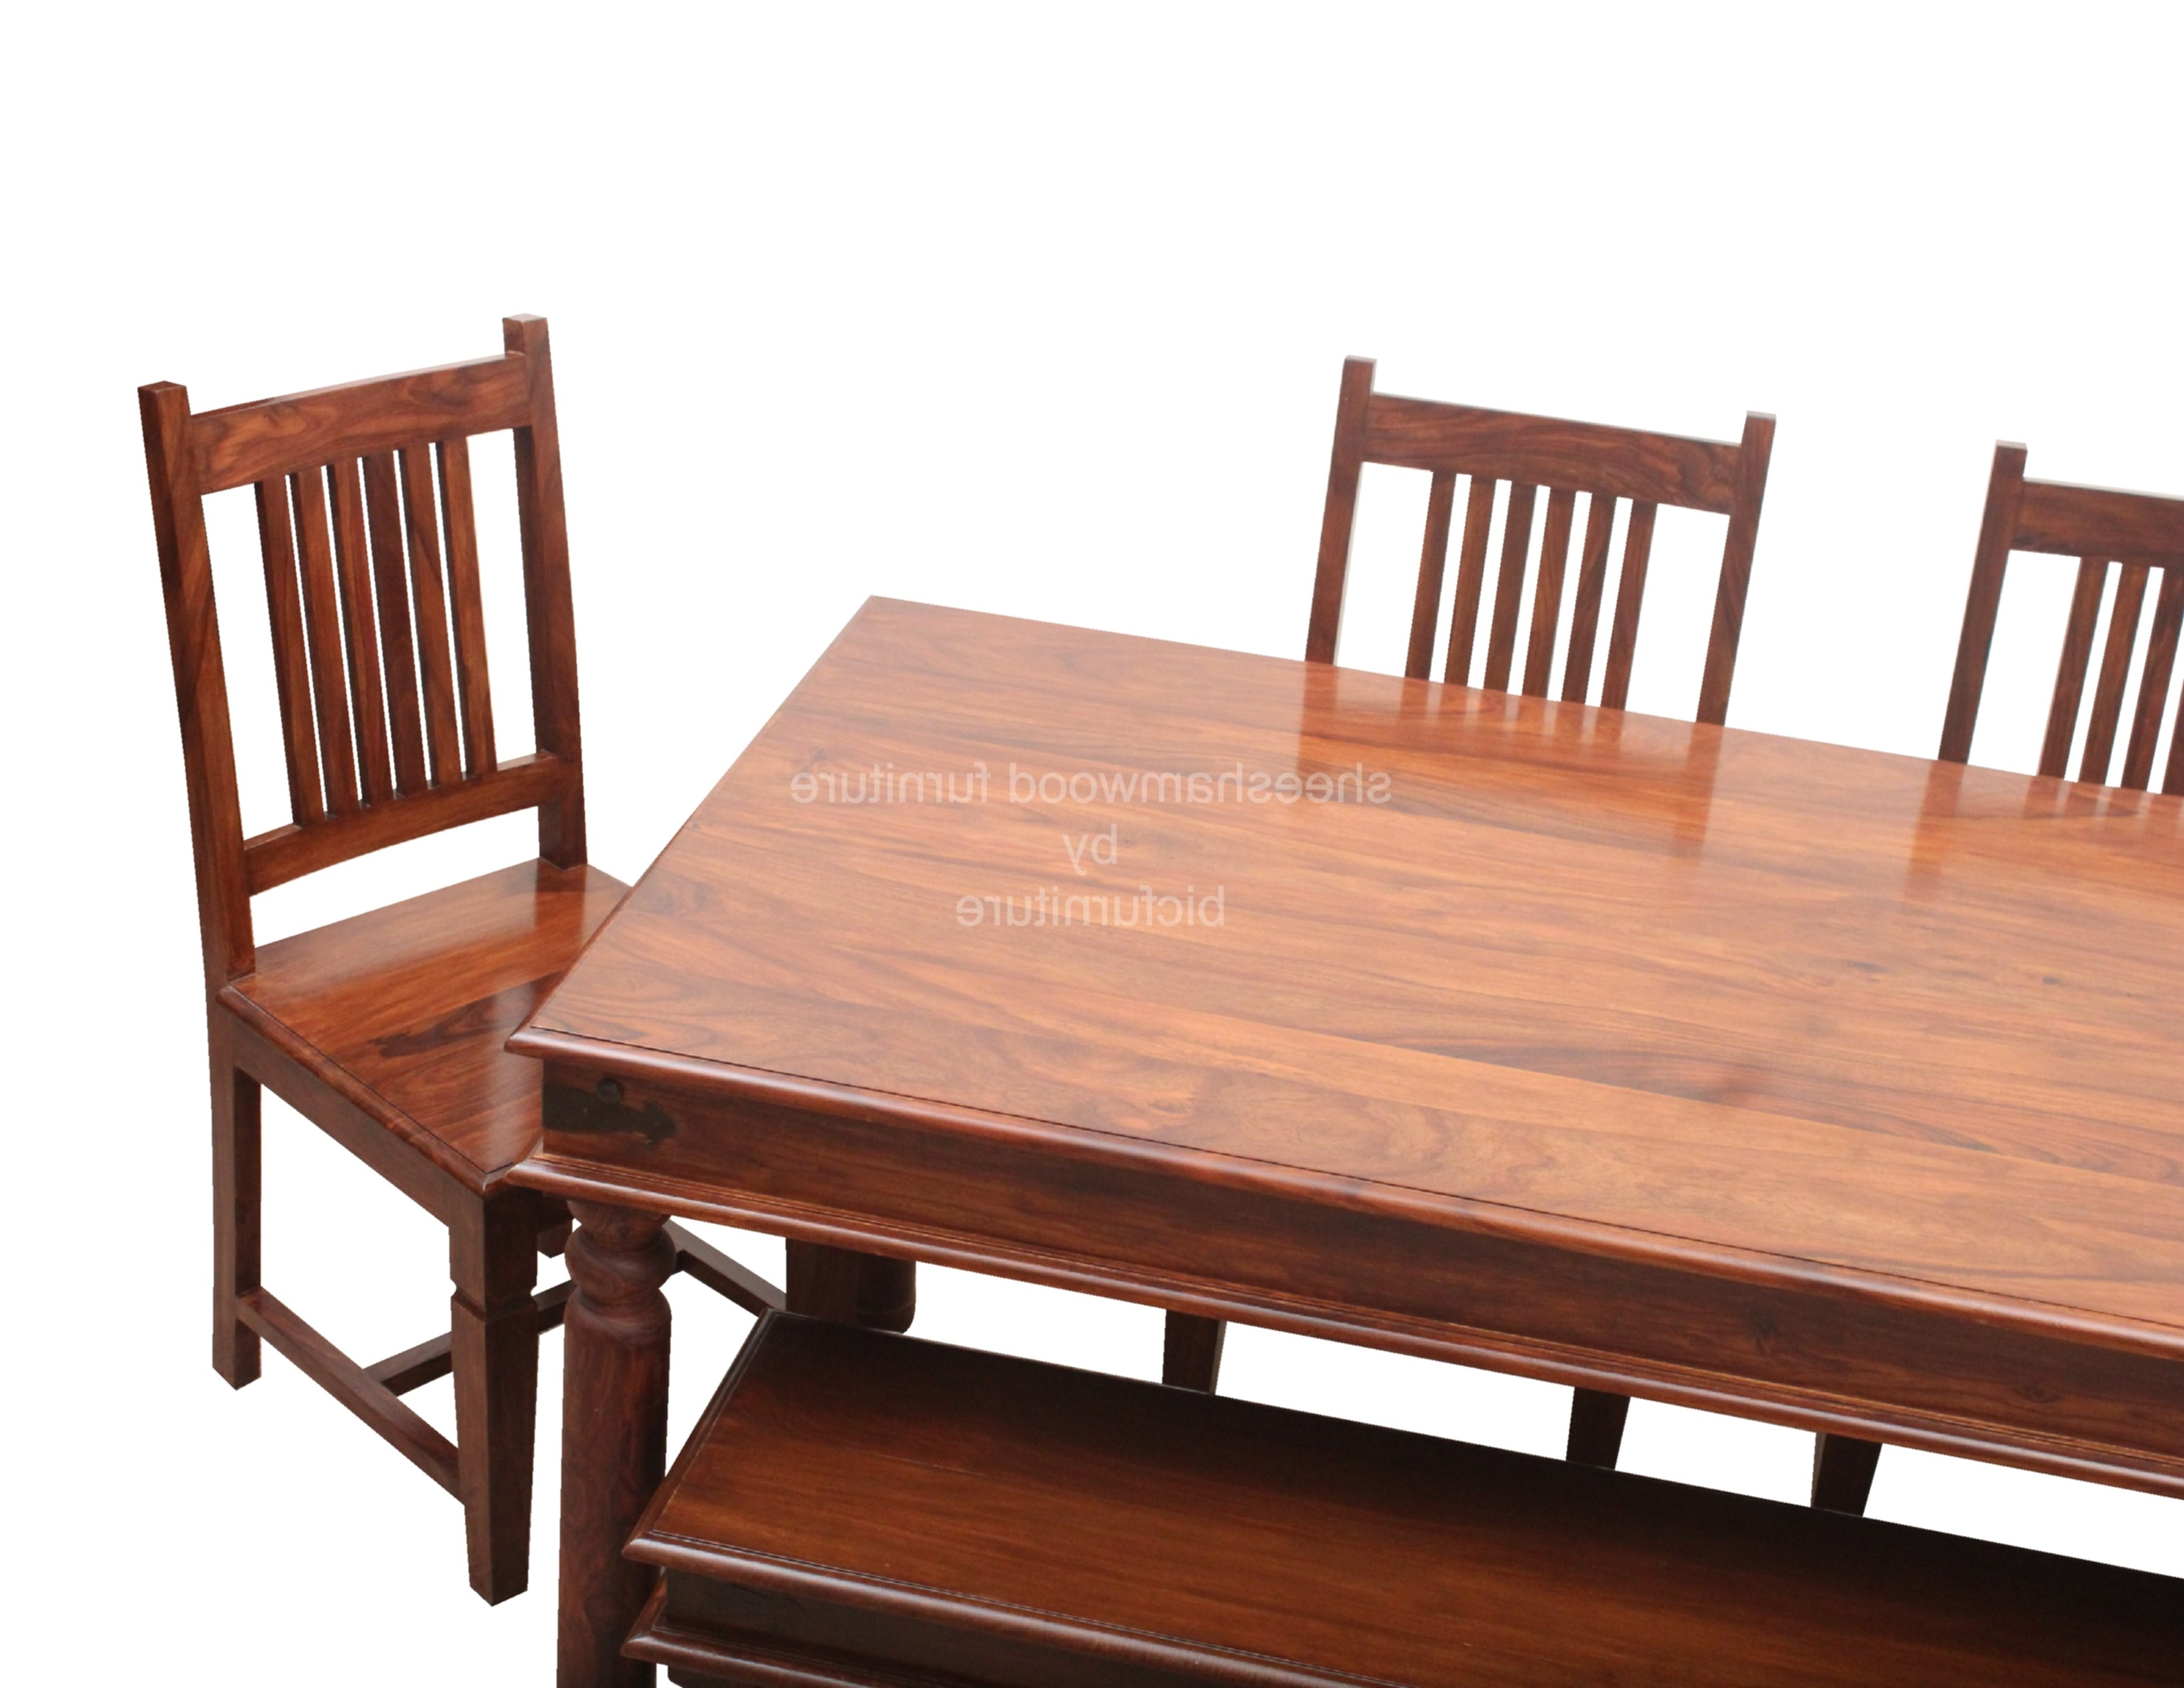 Most Recently Released Sheesham Wood Dining Chairs With Sturdy Solid Wood Dining Set In Sheesham Wood (View 14 of 25)